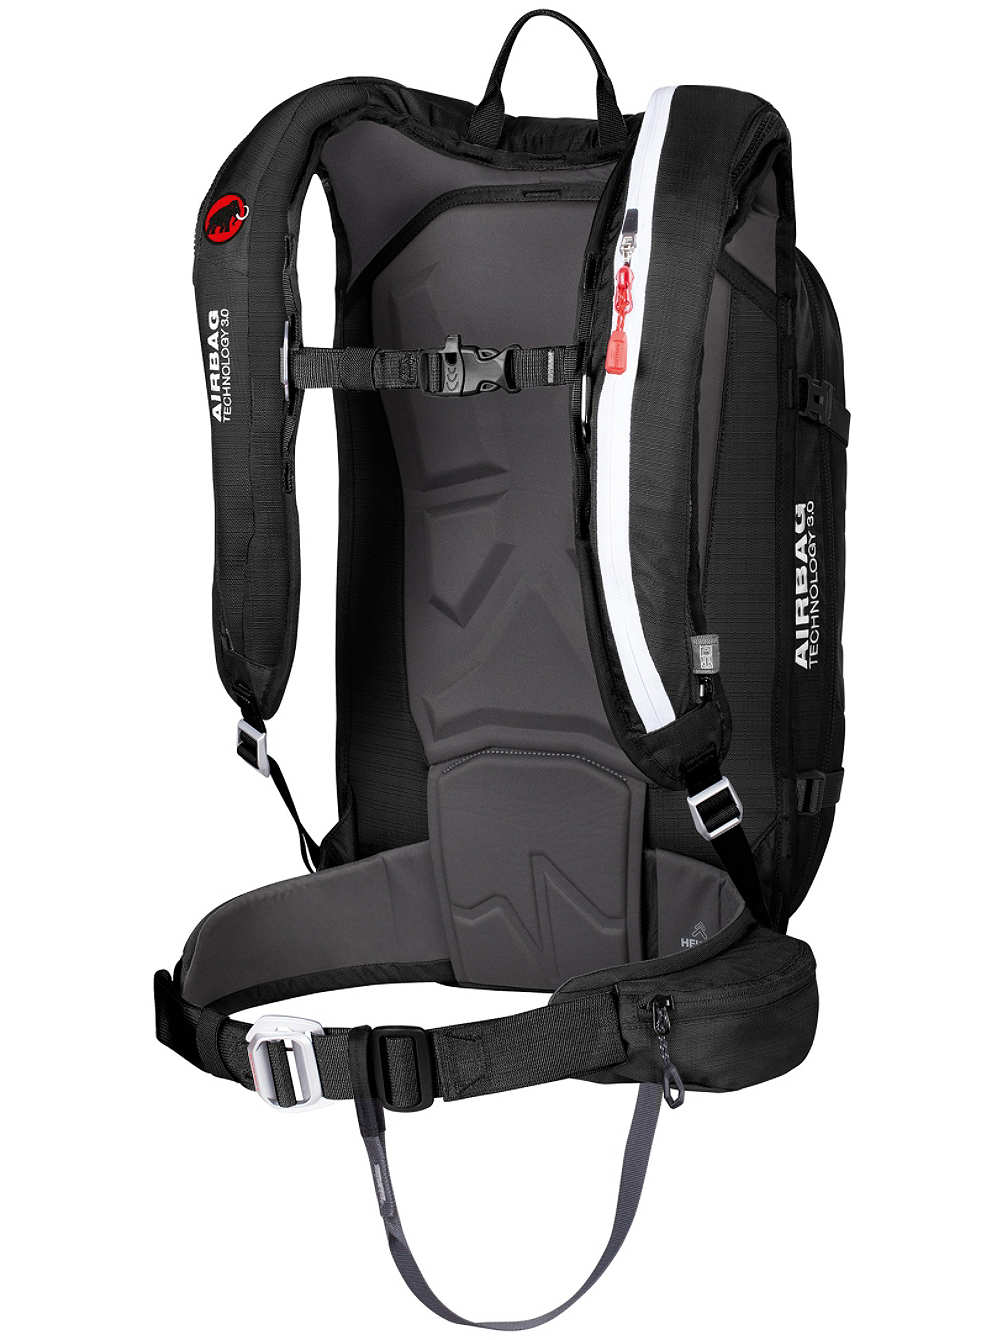 Ride+Protection+Airbag+3+0+Backpack (1).jpg